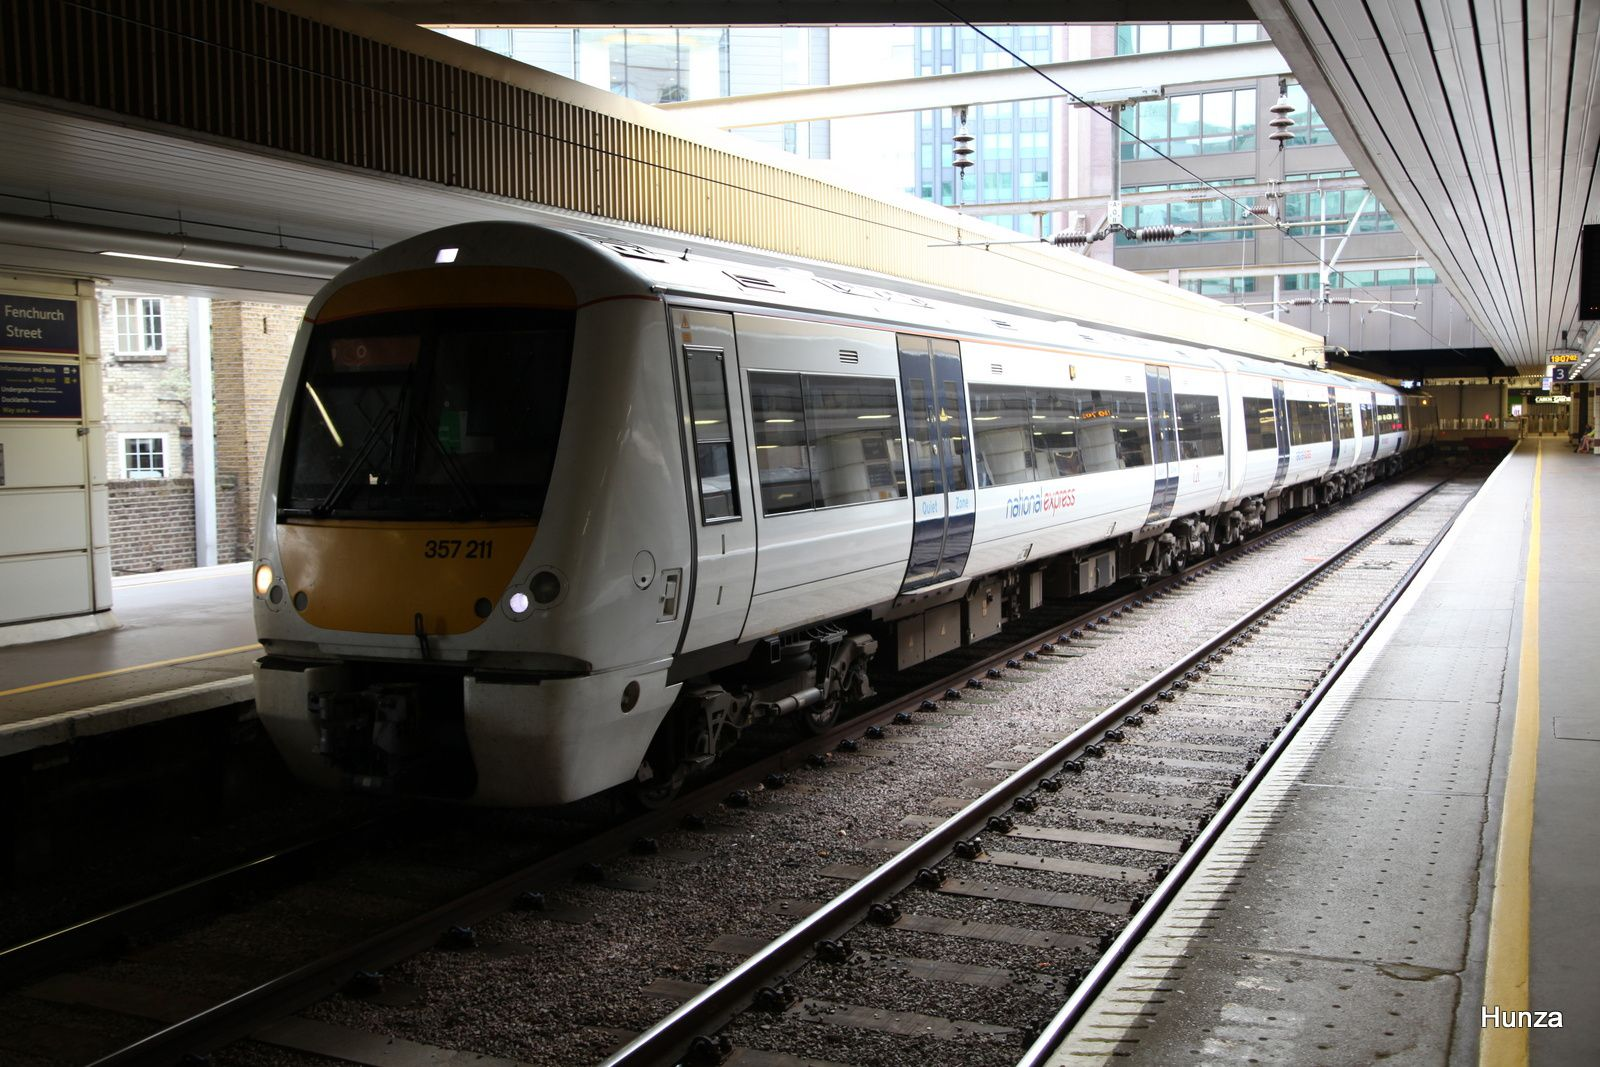 Class 357/2 n°357 211 à London Fenchurch Street railways station